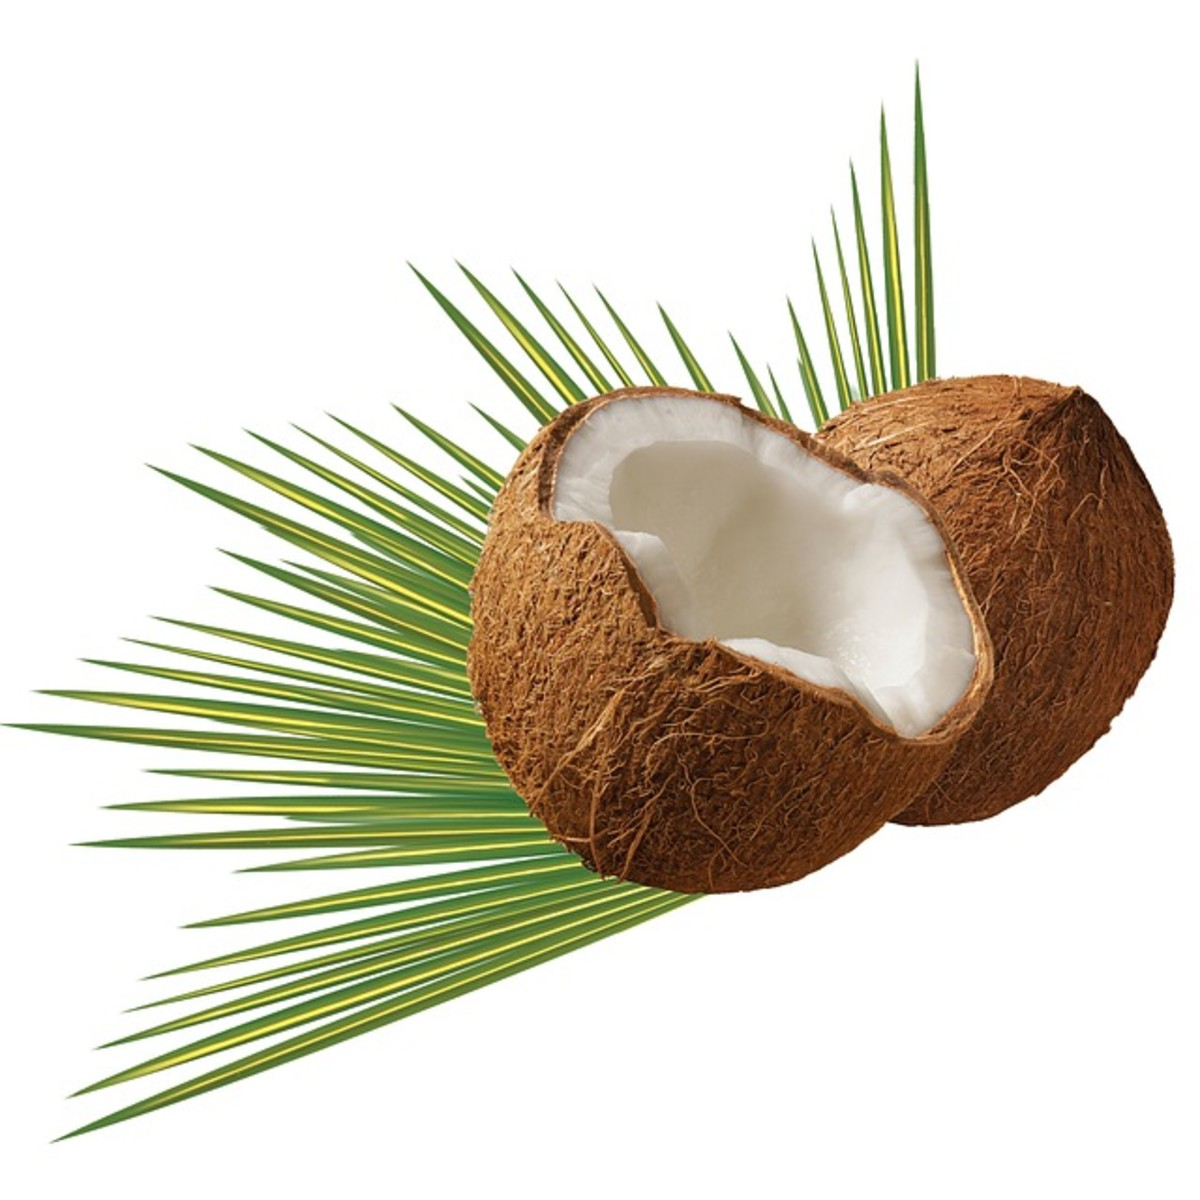 A Broken Coconut